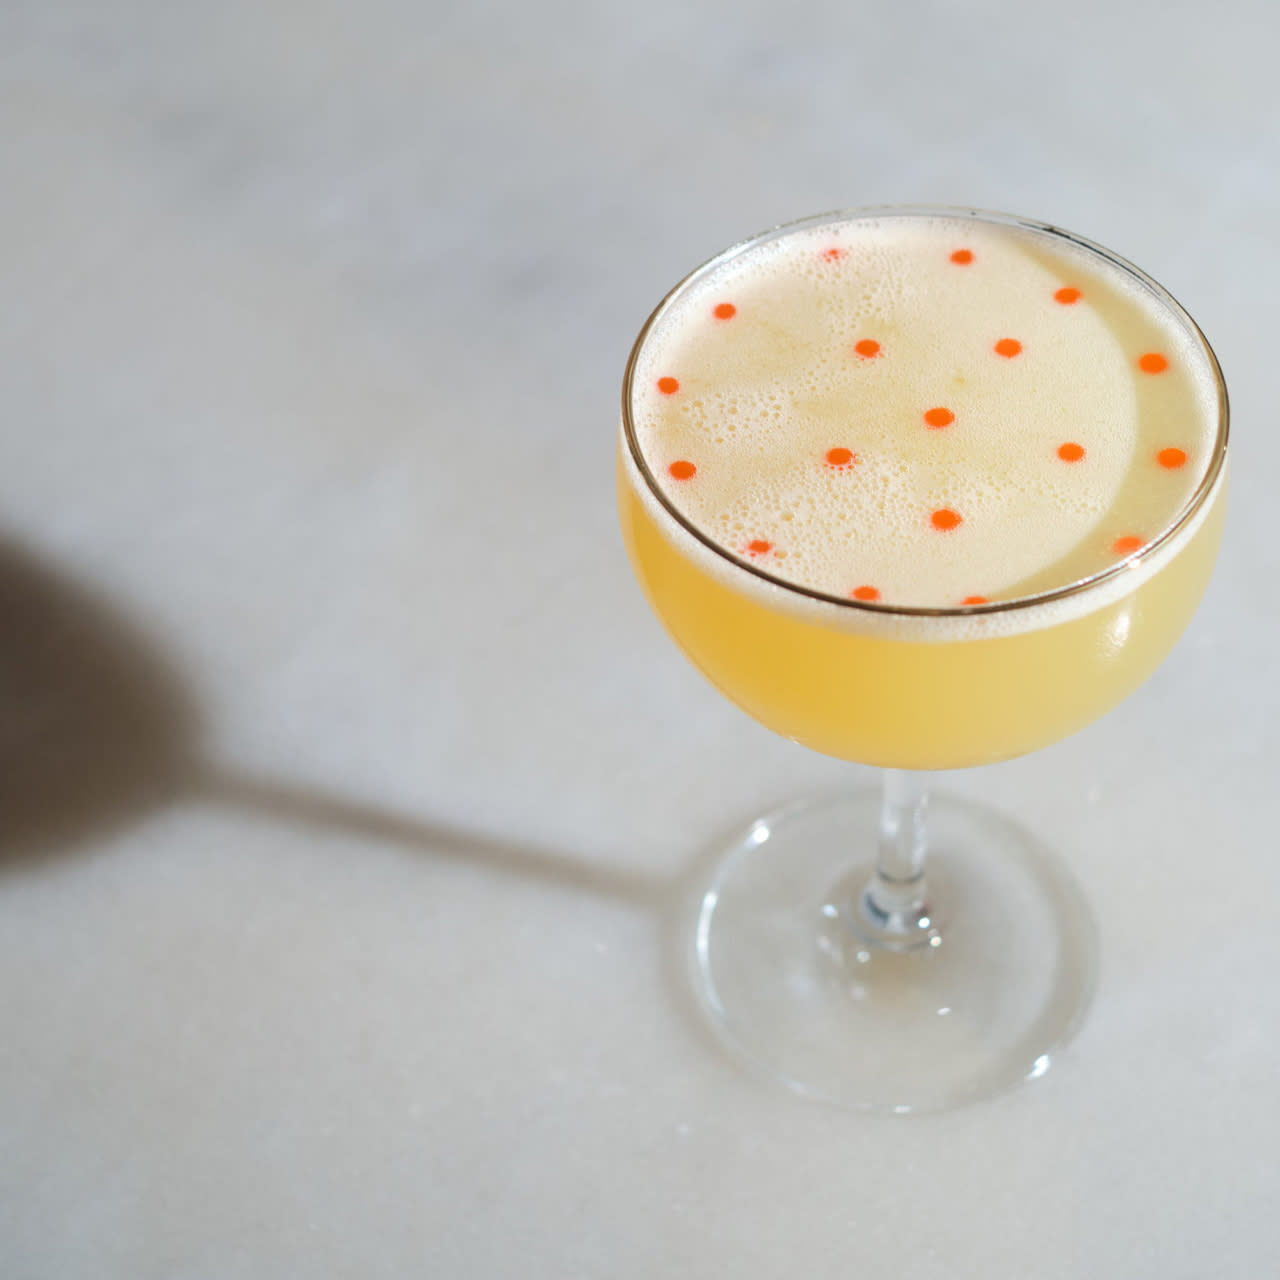 A cocktail drink displayed in a glass, yellow with small orange circles.